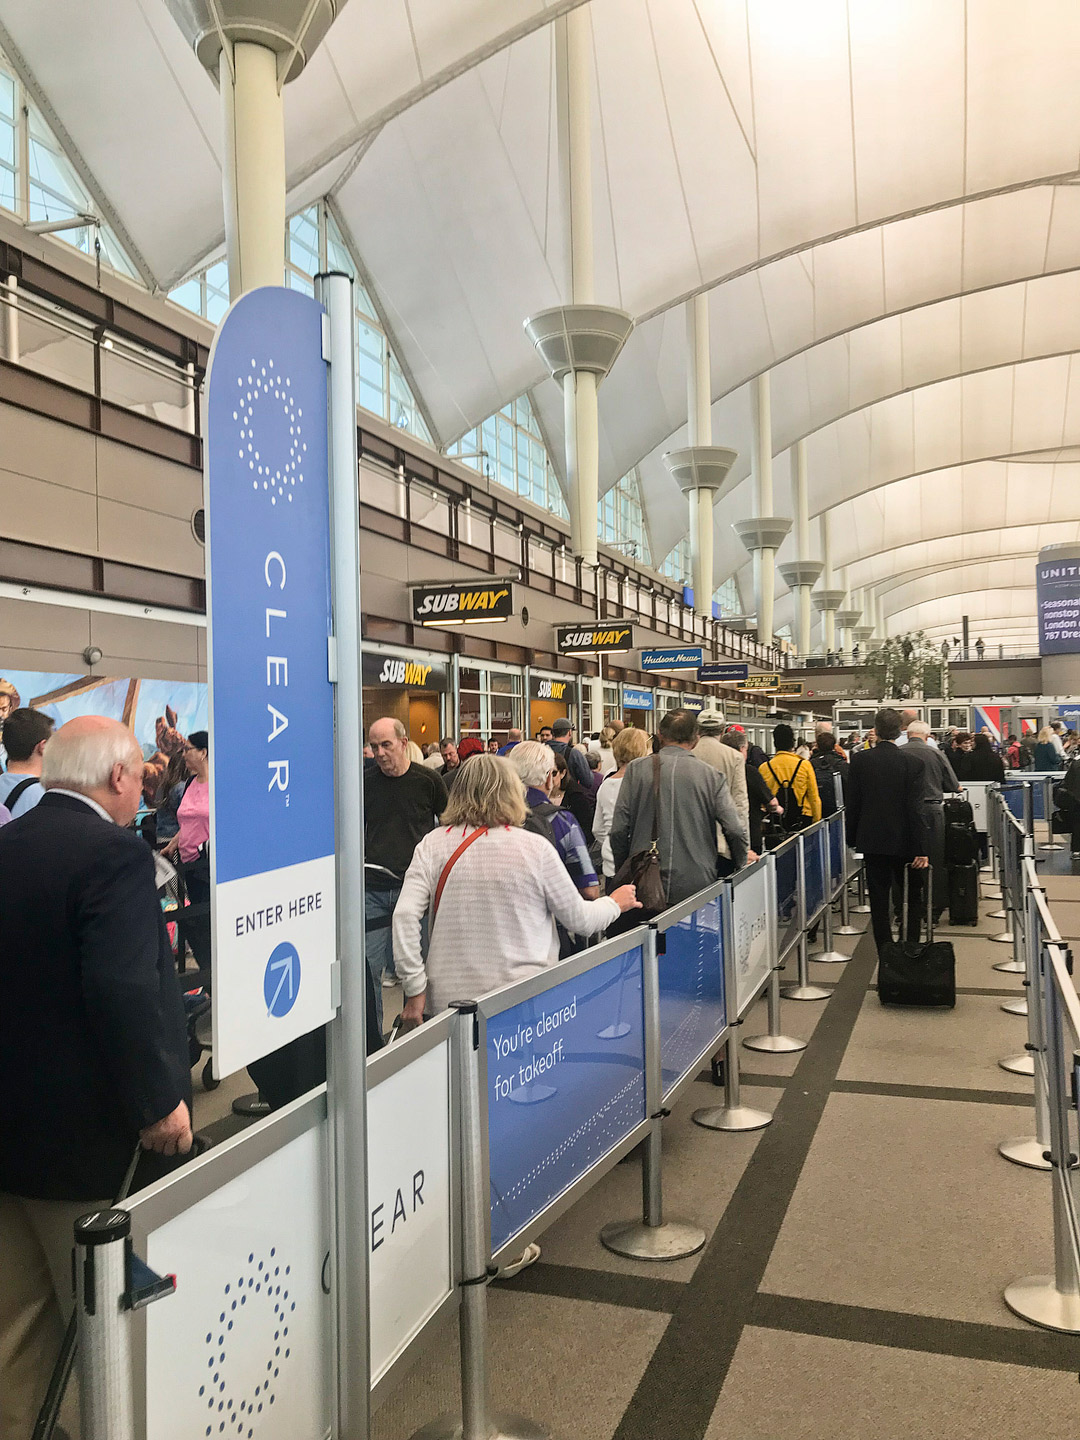 Thinking about getting Clear? Save this pin and click through to see our guide on how to breeze through airport security like a boss the differences between Clearme vs TSA Precheck, how and where to apply for TSA Precheck and Clear, cost, and more // Local Adventurer #clear #airport #traveltips #localadventurer #travel #travelpro #travelblogger